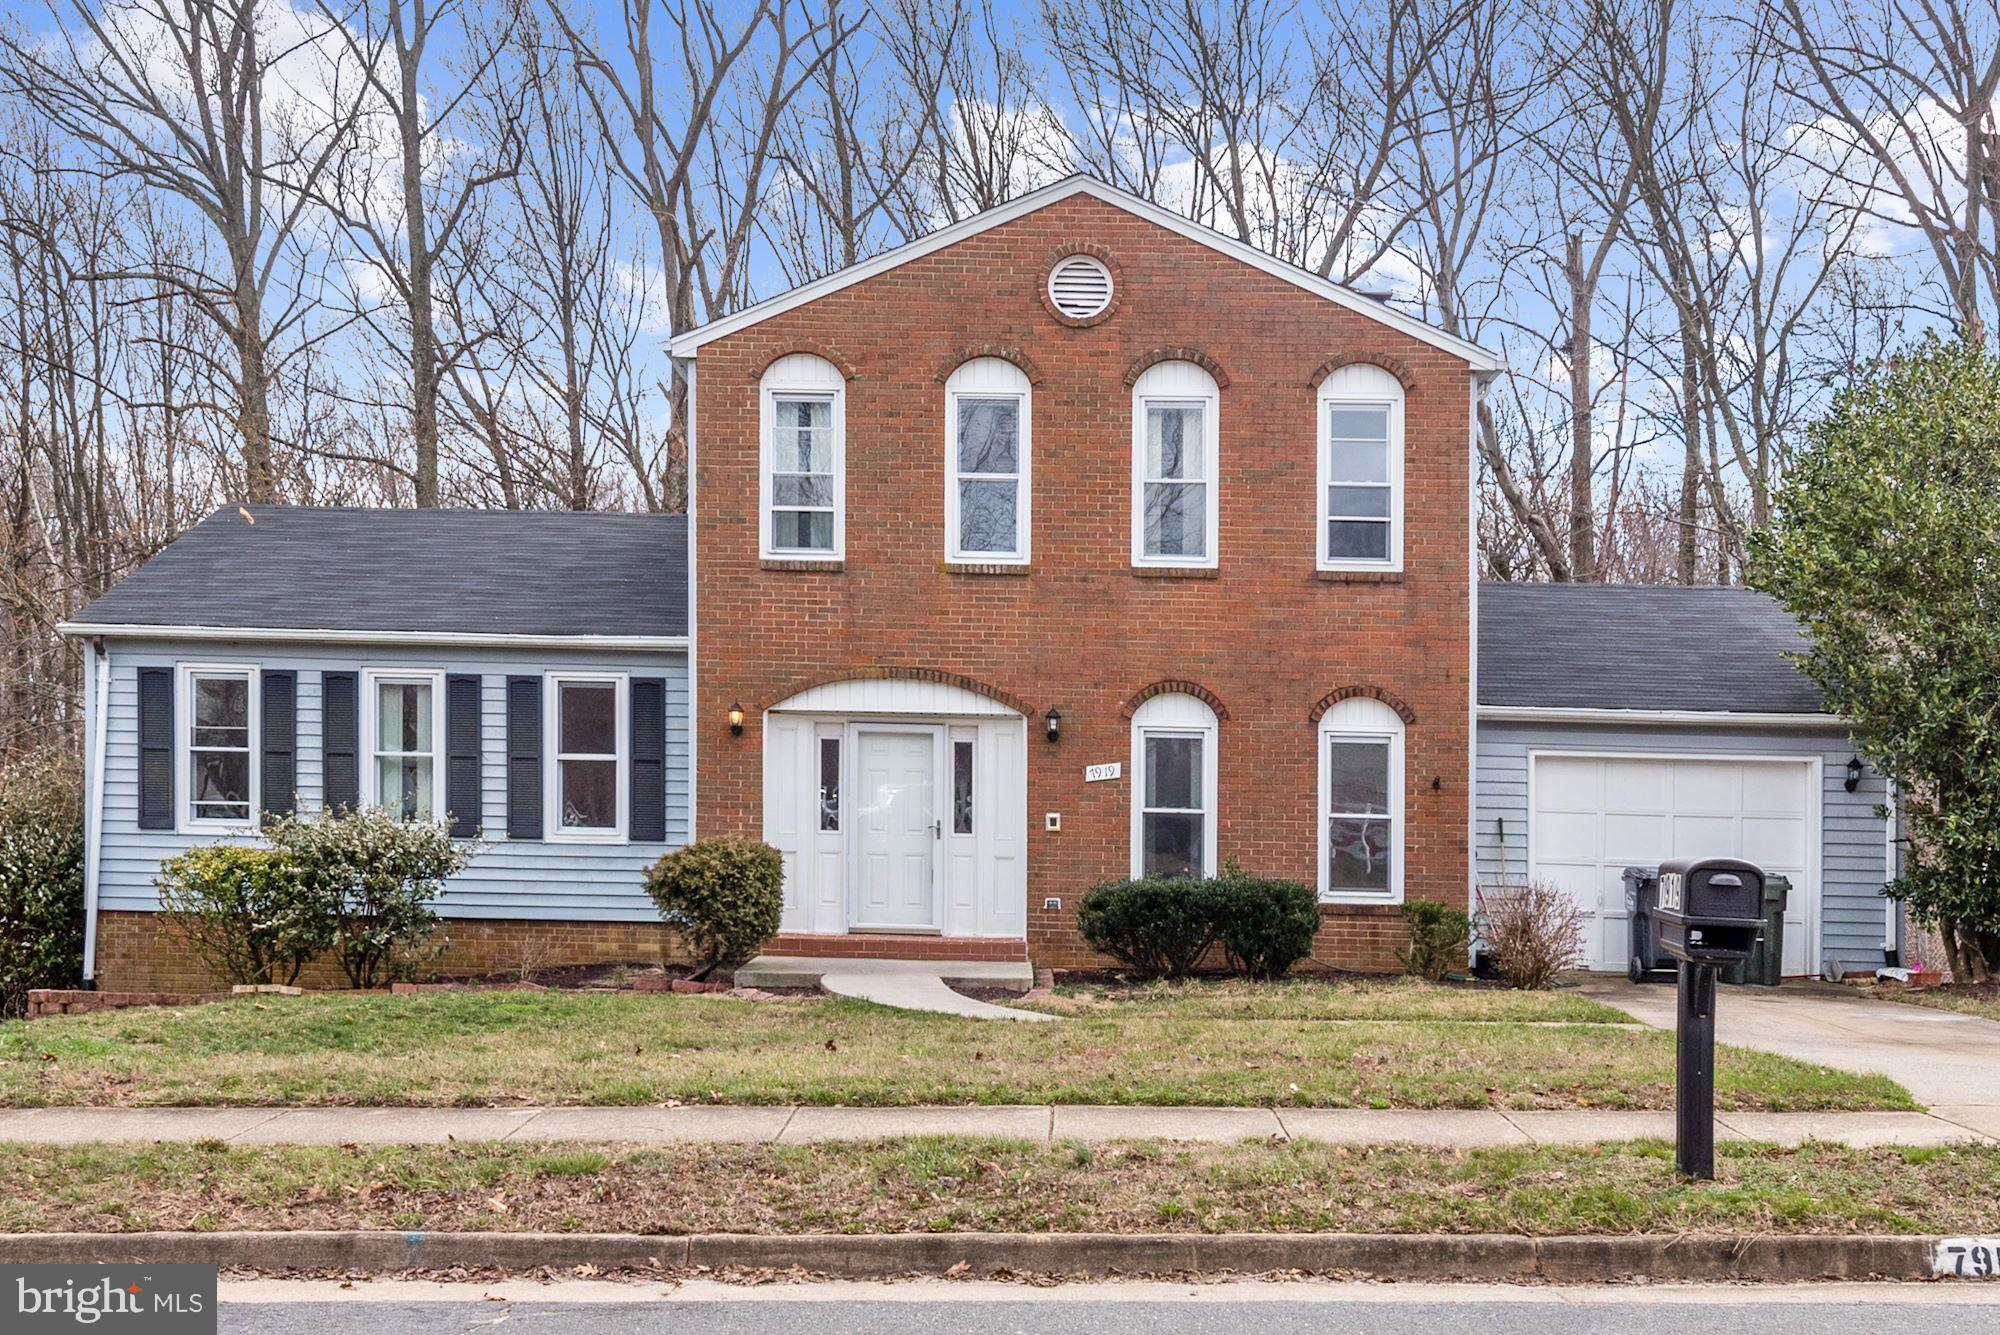 CULDESAC LIVING AT IT'S FINEST * MAIN AND UPPER LEVEL HARDWOODS * UPDATED KIT W/GRANITE & SS * MAIN LEVEL FEATURES STUDY/6TH BR & FULL BA * 4 GENEROUS BR & 2 FULL BA UP * MASTER BR W/ENSUITE BA & XL CLOSETS * FULLY FINISHED WALKOUT LL W/5TH BR & 4TH FULL BA * MAIN LEVEL LAUNDRY * SCREENED IN PORCH * SUPER SPACIOUS HOME SURROUNDED BY TREES